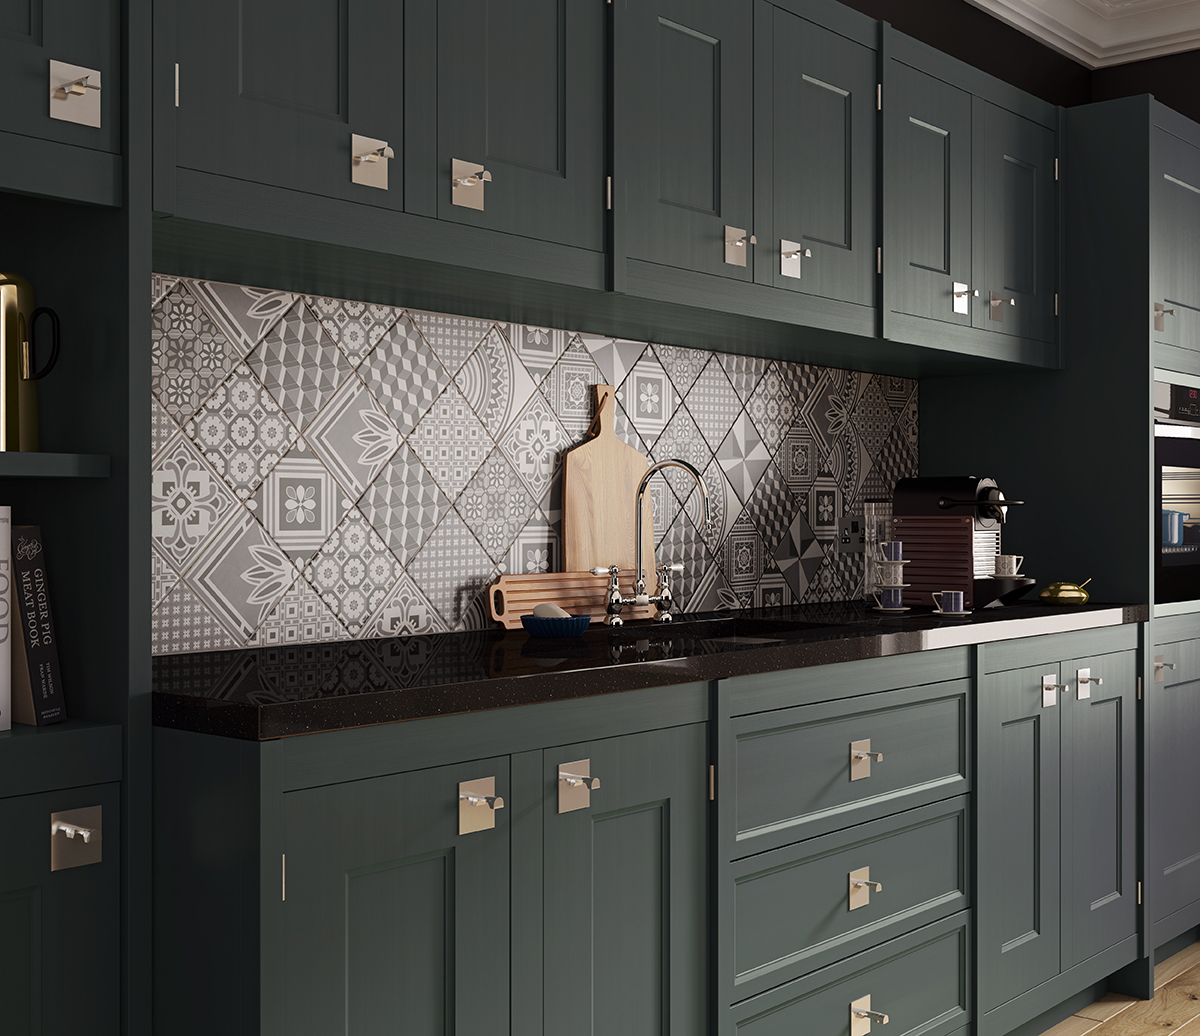 Ted Baker GeoTile kitchen tiles porcelain tiles used as splashback in black kitchen